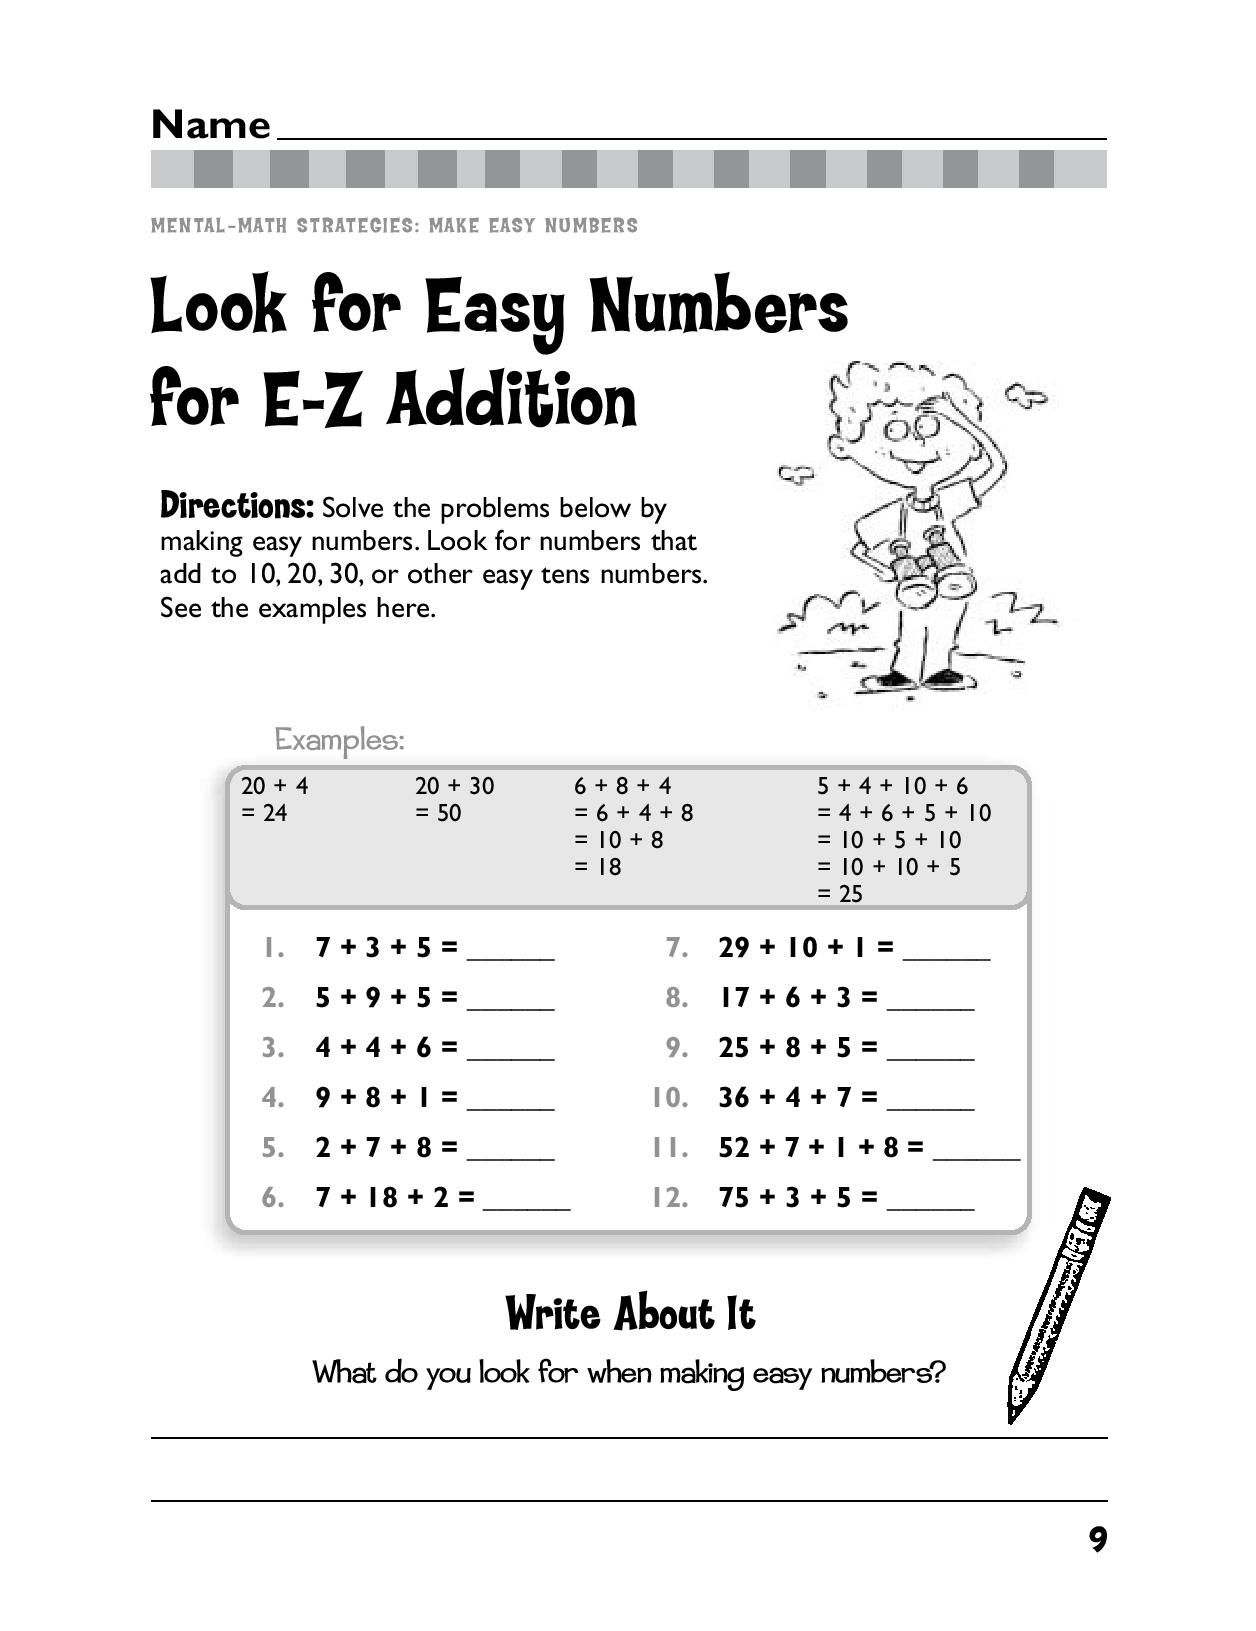 Teaching Your Child To Look For Easy Numbers Will Help Make Math Easy Ages 6 7 Math Worksheets Free Printable Math Worksheets Printable Math Worksheets